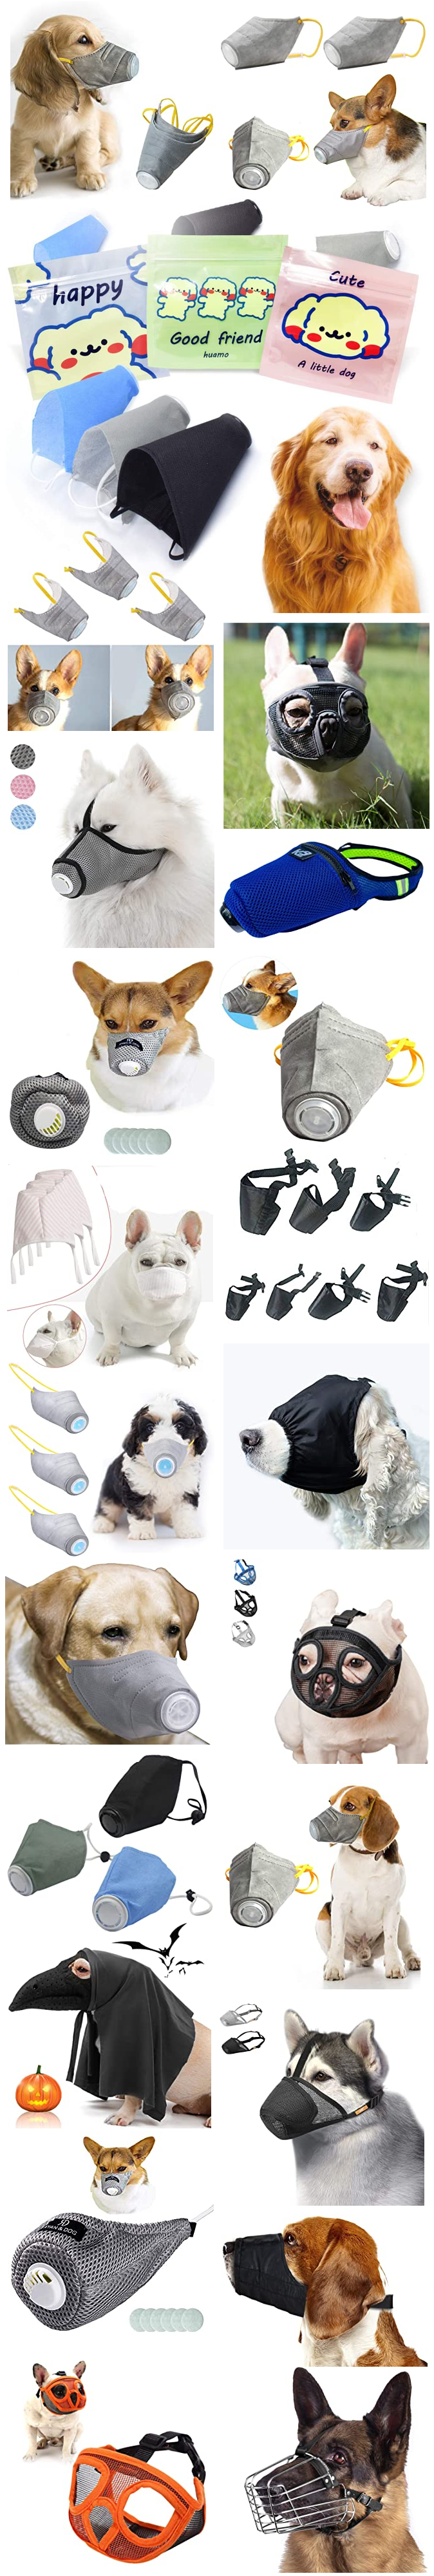 FACE MASKS FOR DOGS